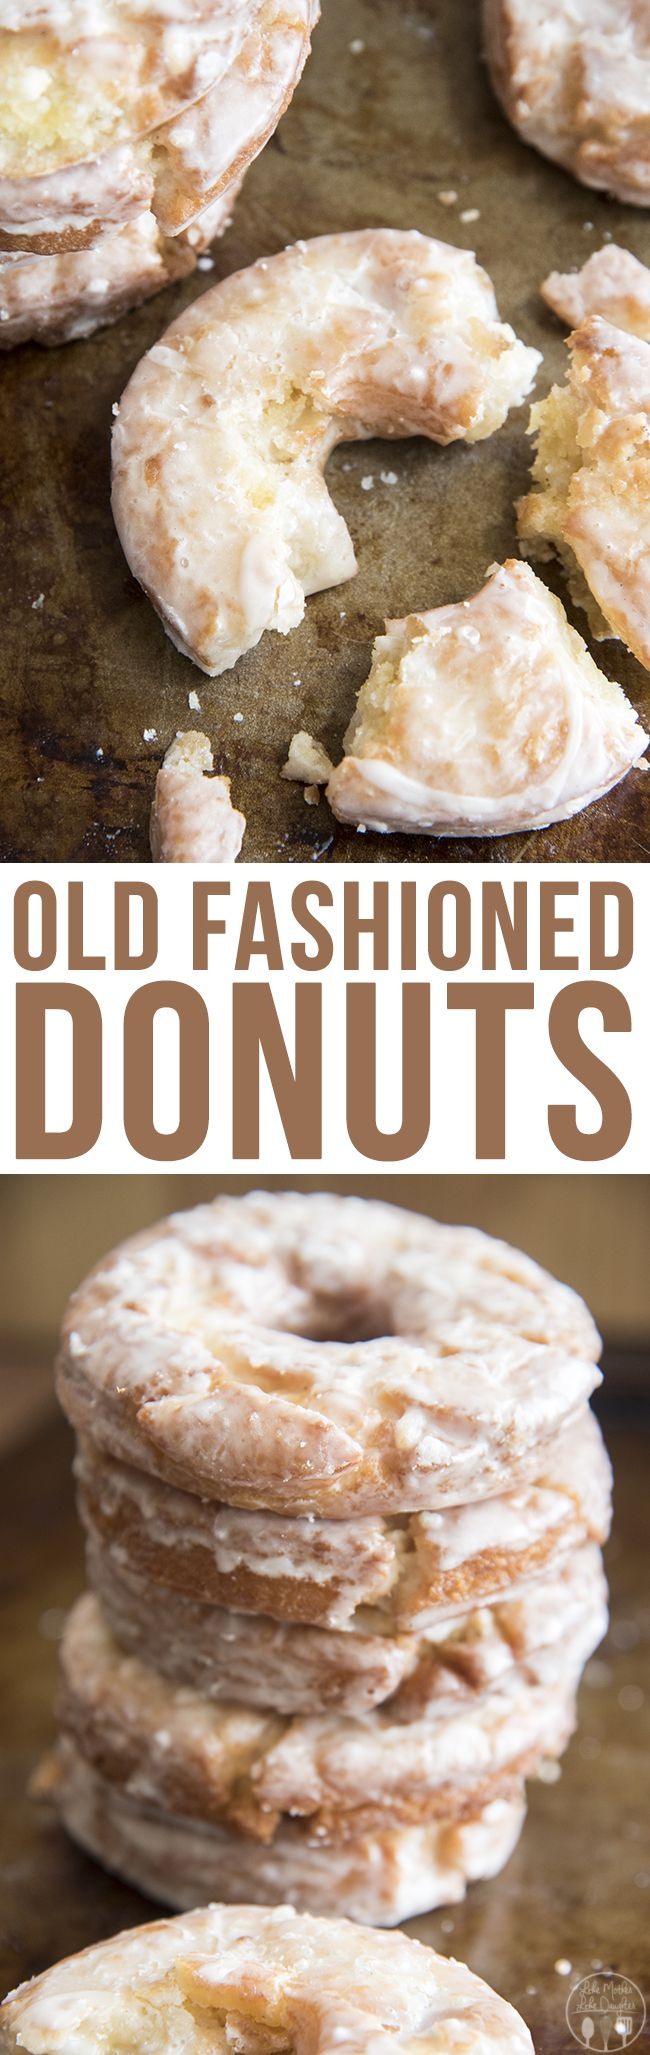 Old Fashioned Donuts - These delicious have a soft cakey center, crunchy exterior and taste just like your favorite old fashioned donuts from a bakery!